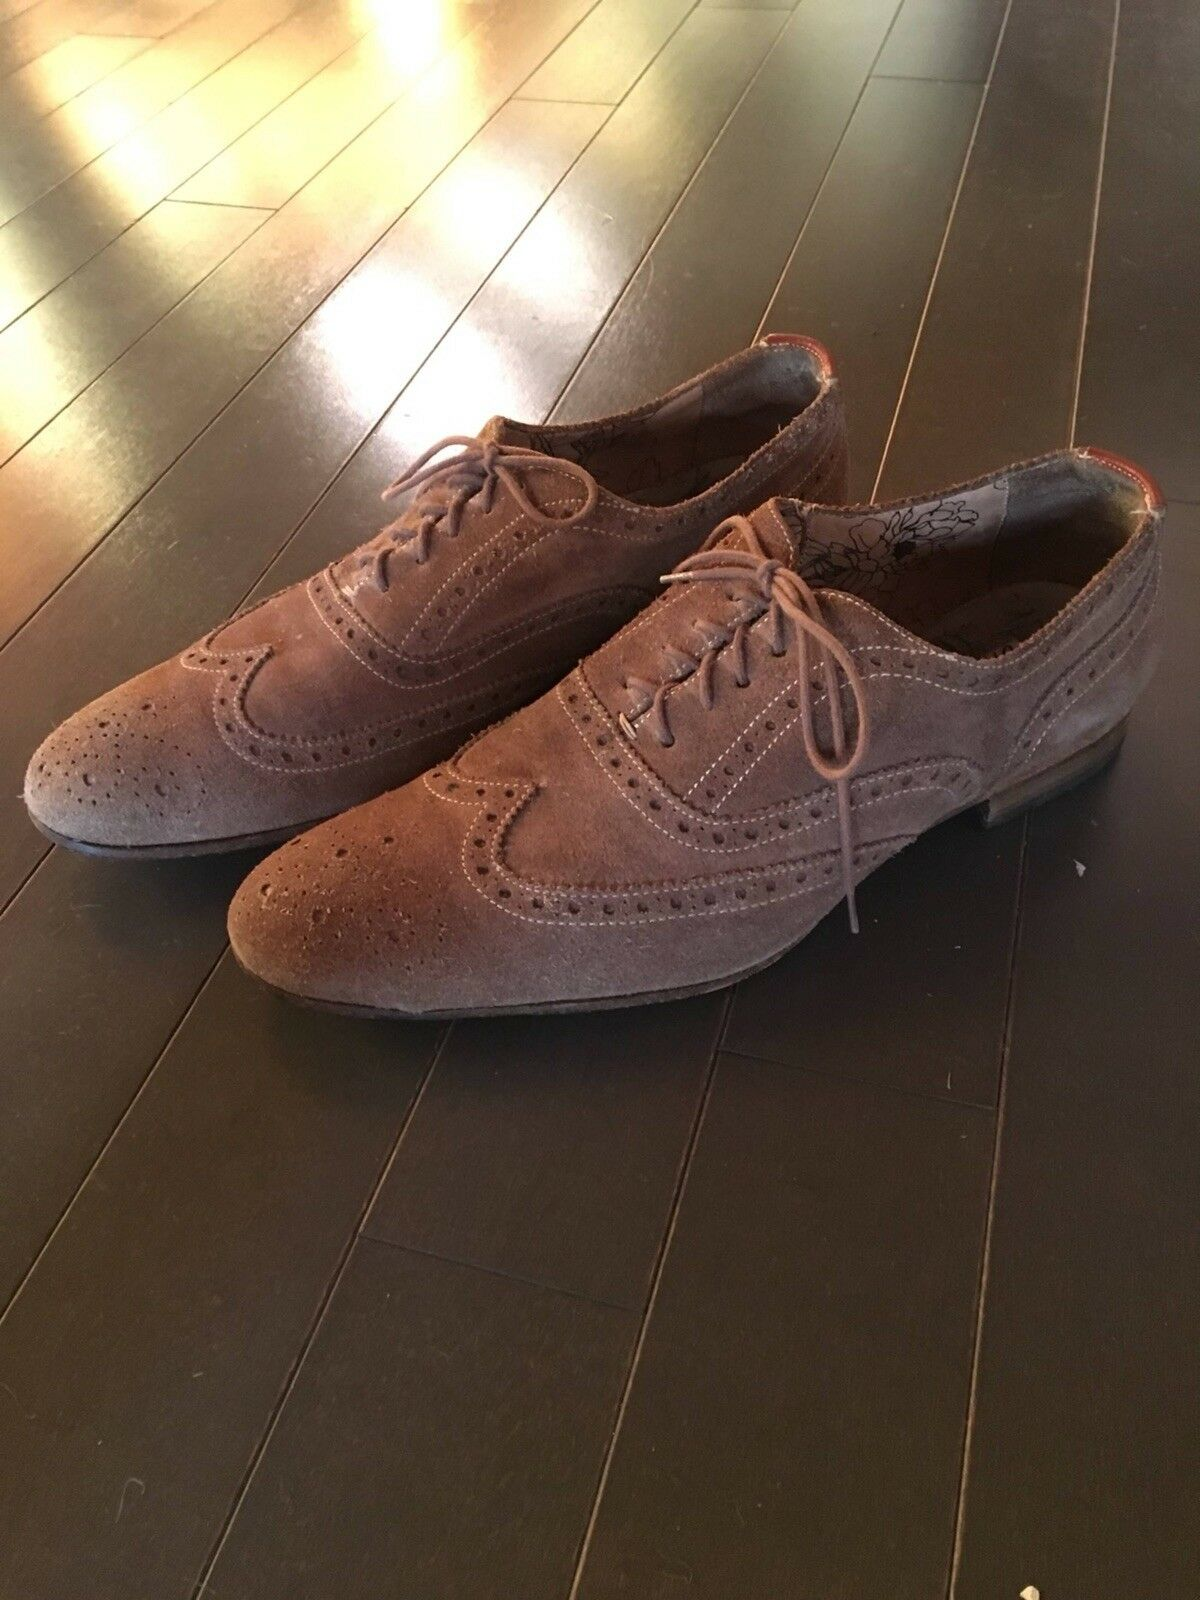 Paul Smith Miller Taupe Beige Tan Wingtip Brogue shoes - US 9